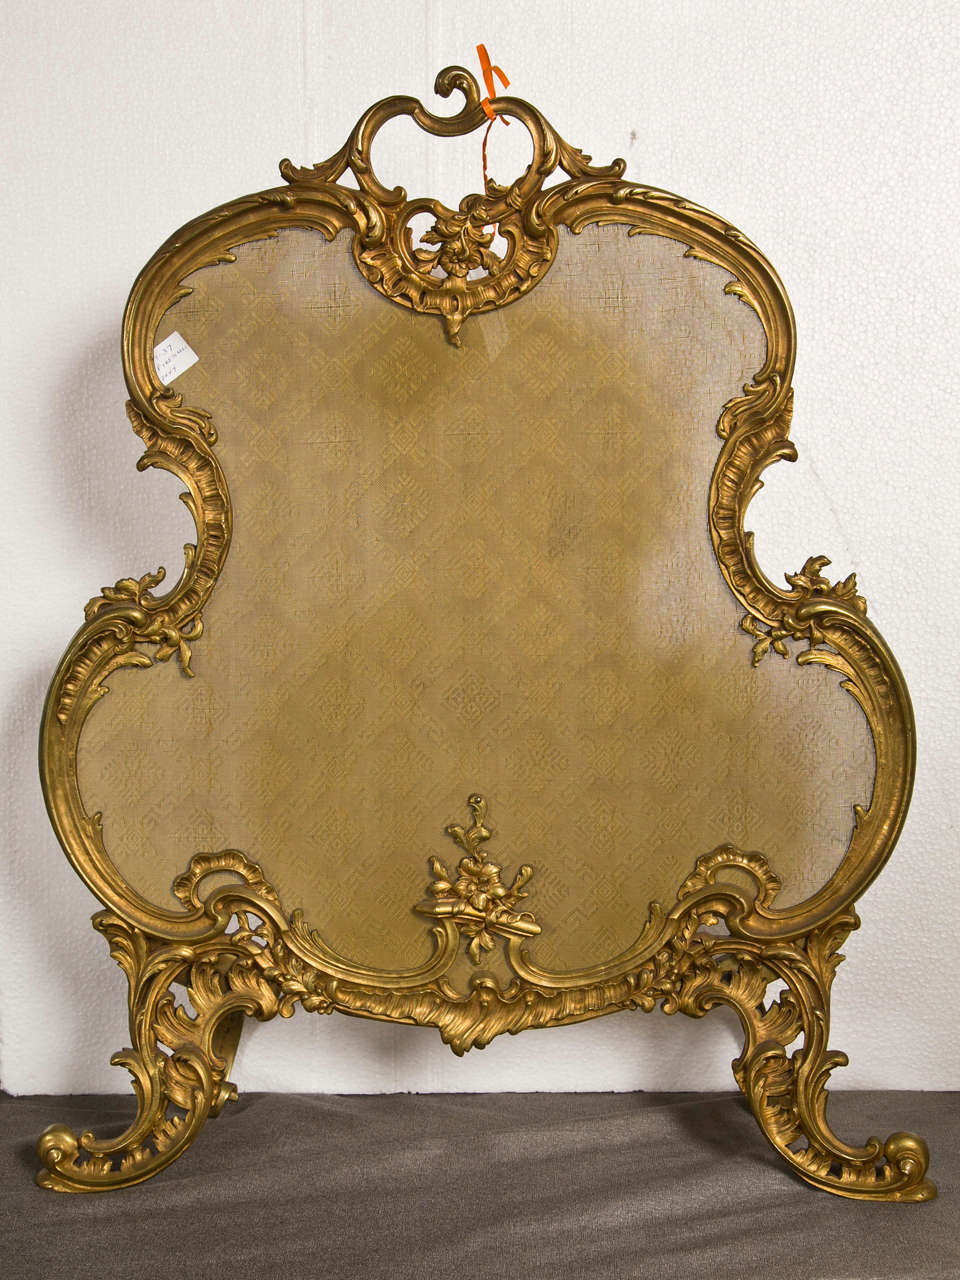 French rococo style gilt bronze fireplace fender at 1stdibs for French rococo fashion